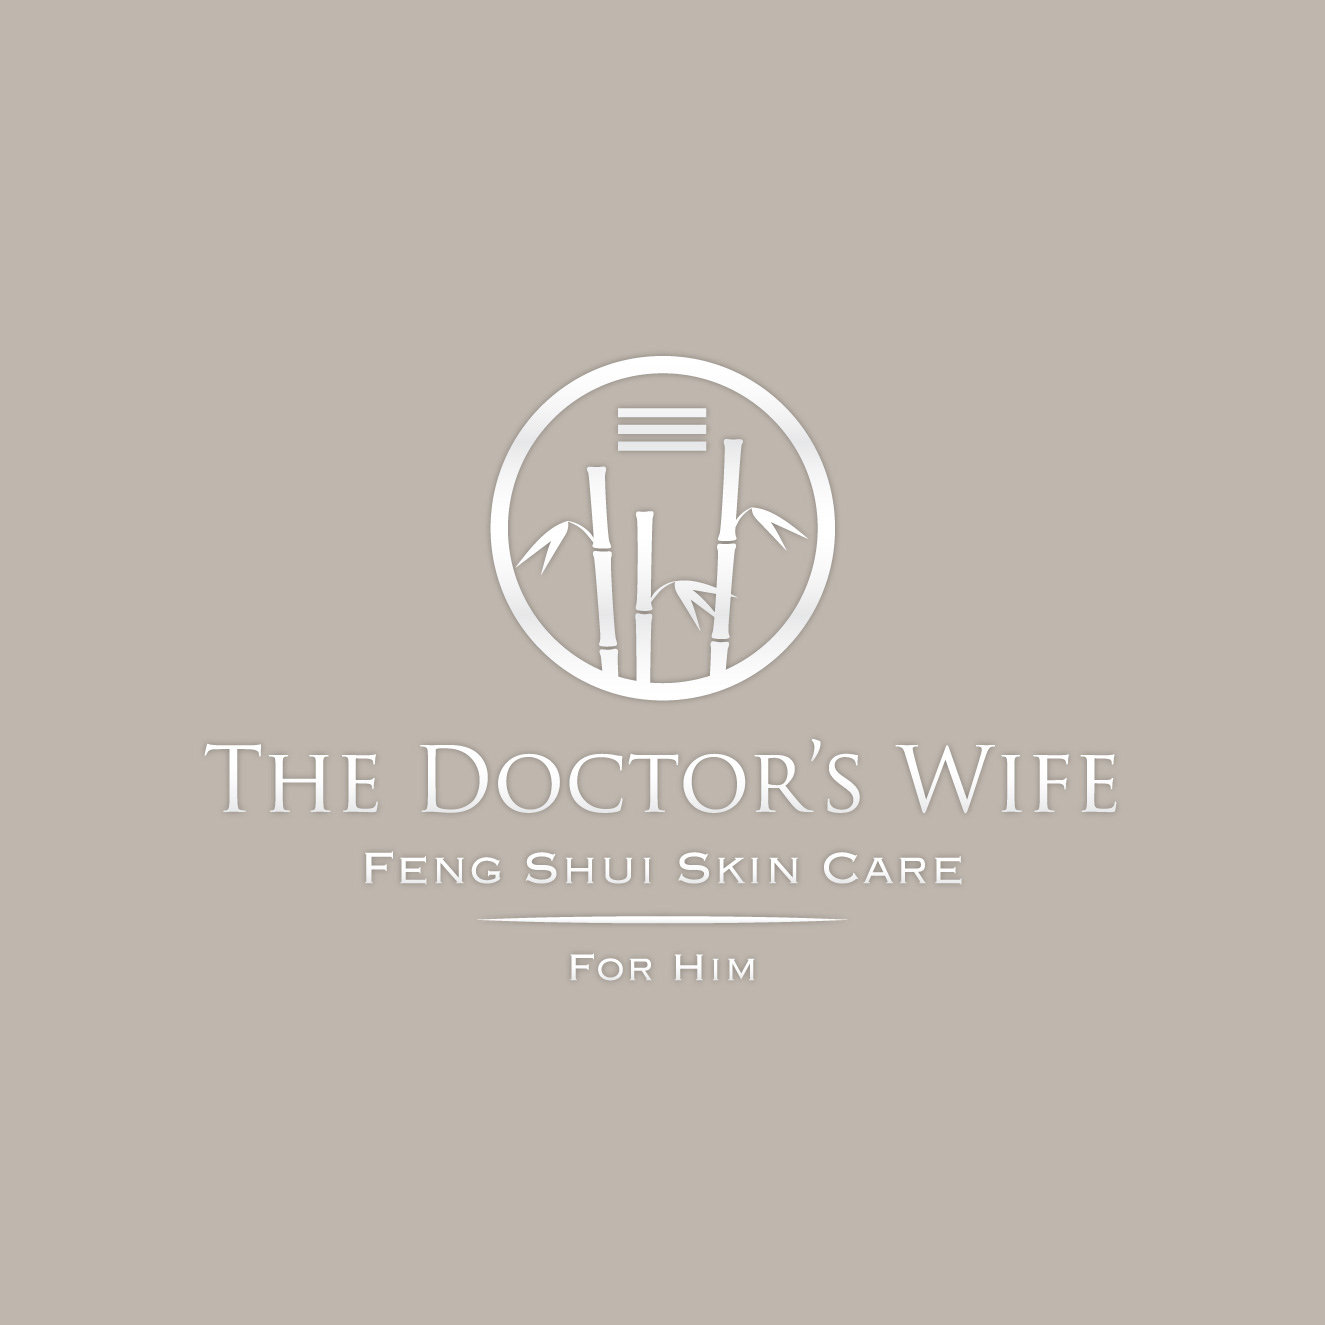 The Doctor's Wife skin care logo series by Ashley Lewis